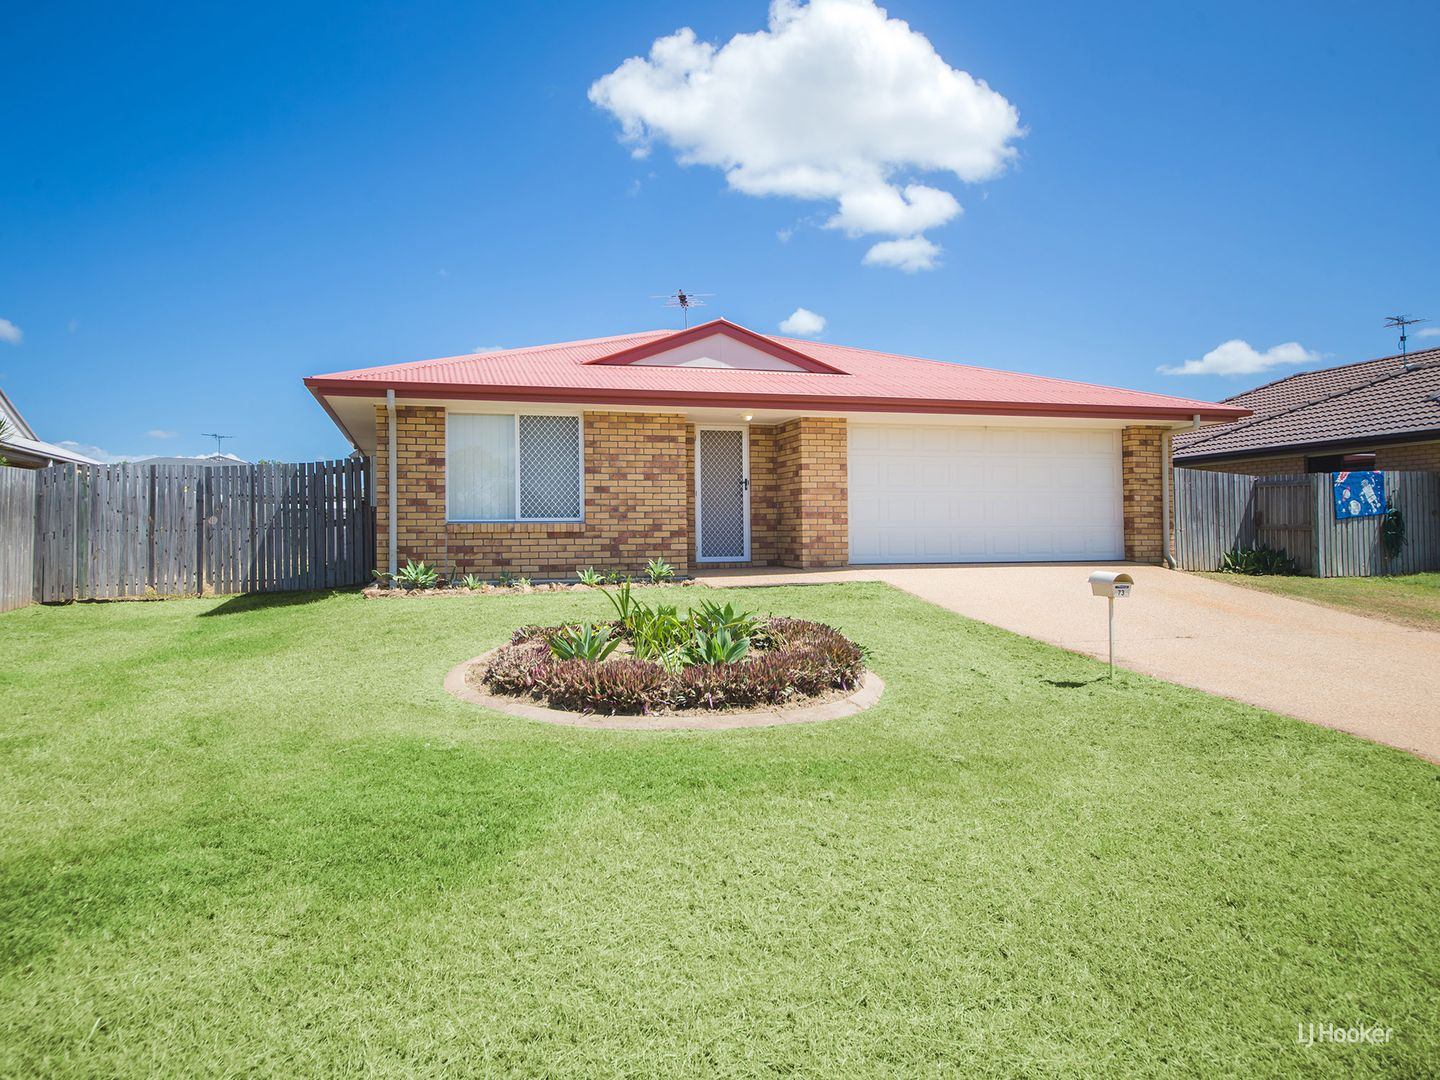 73 Victoria Street, Gracemere QLD 4702, Image 0